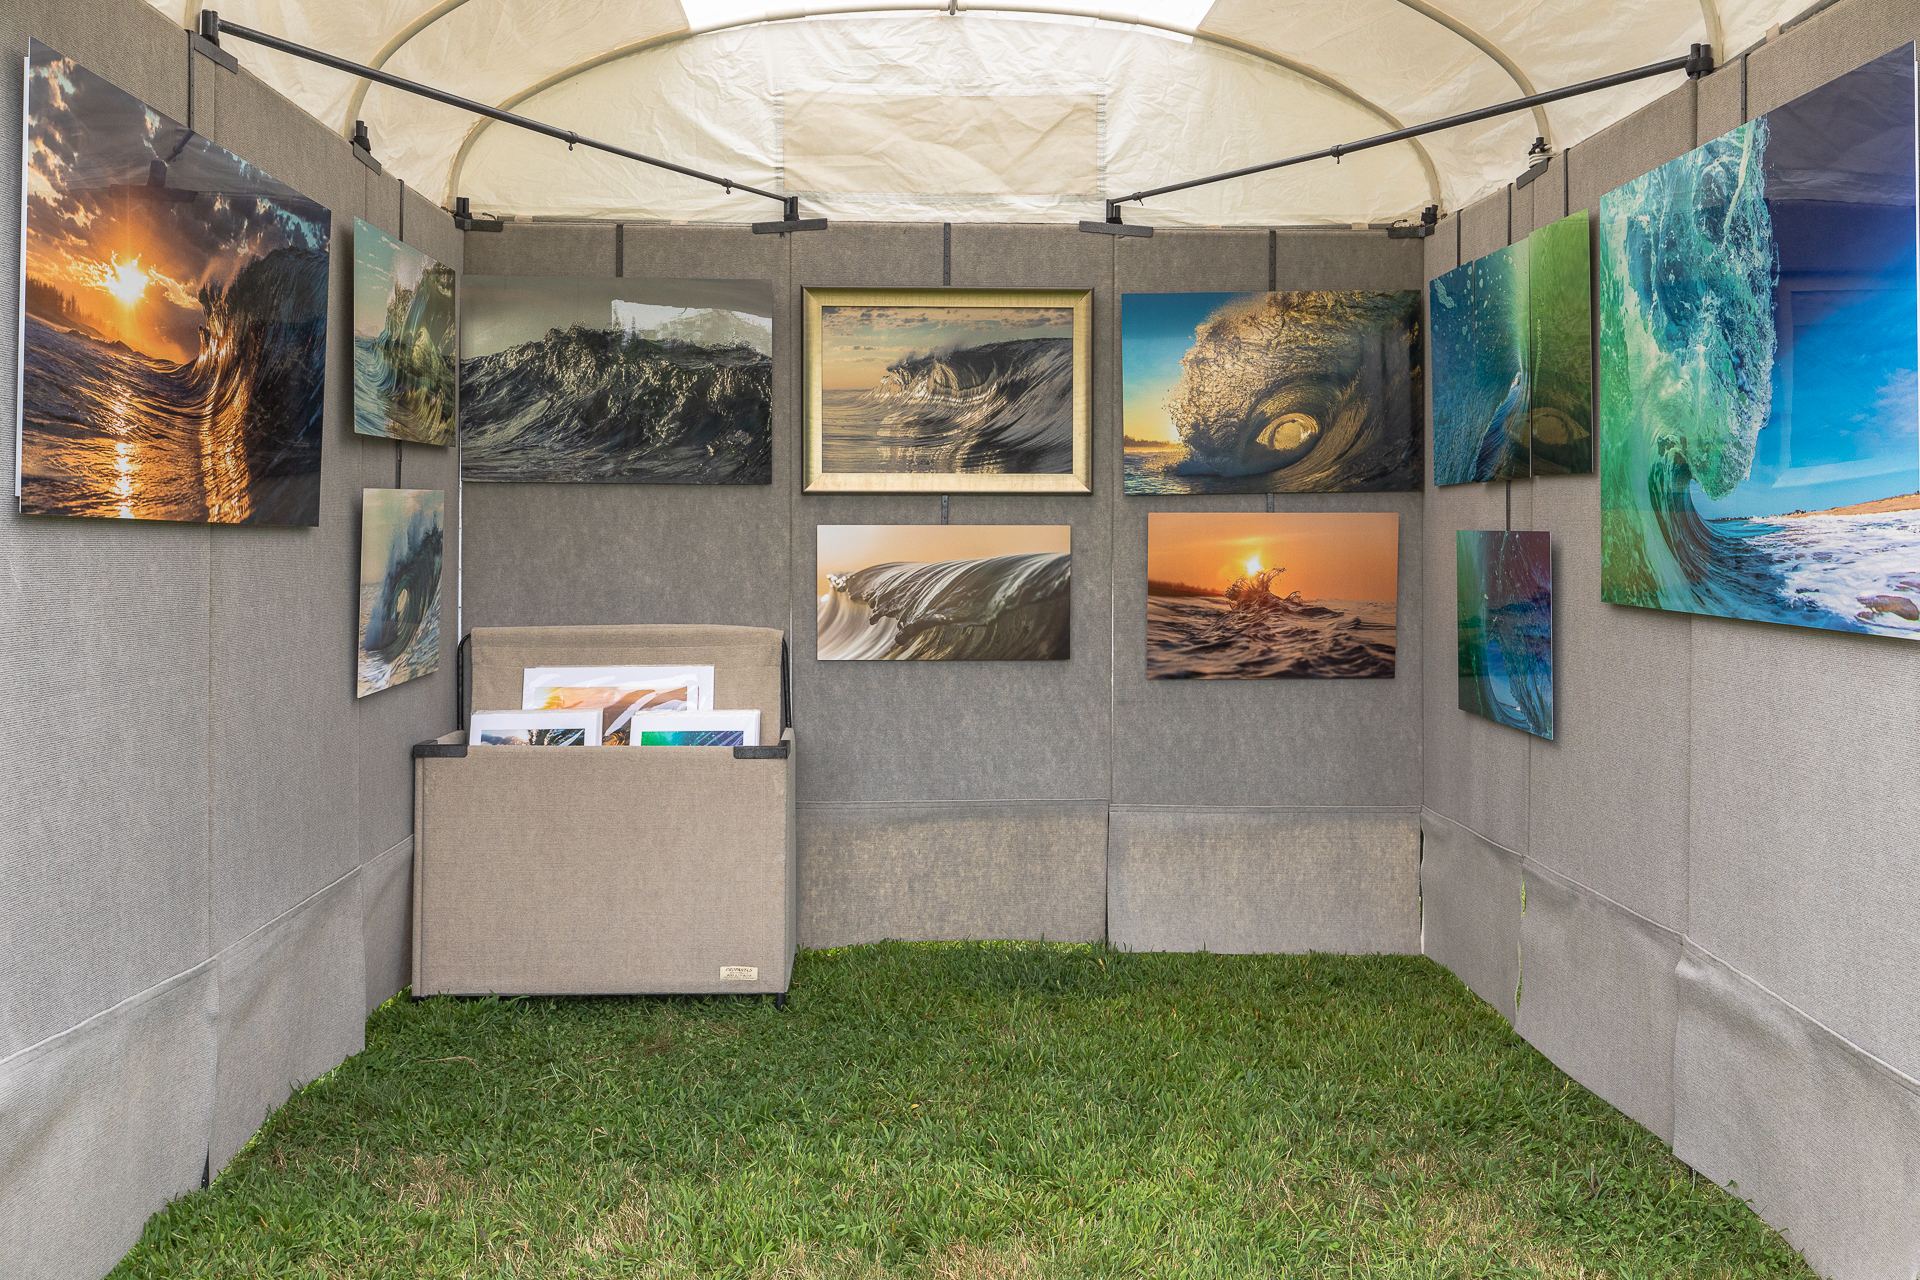 fine art photography prints, limited edition award winning photography, corporate art sales and rentals, home fine art showings